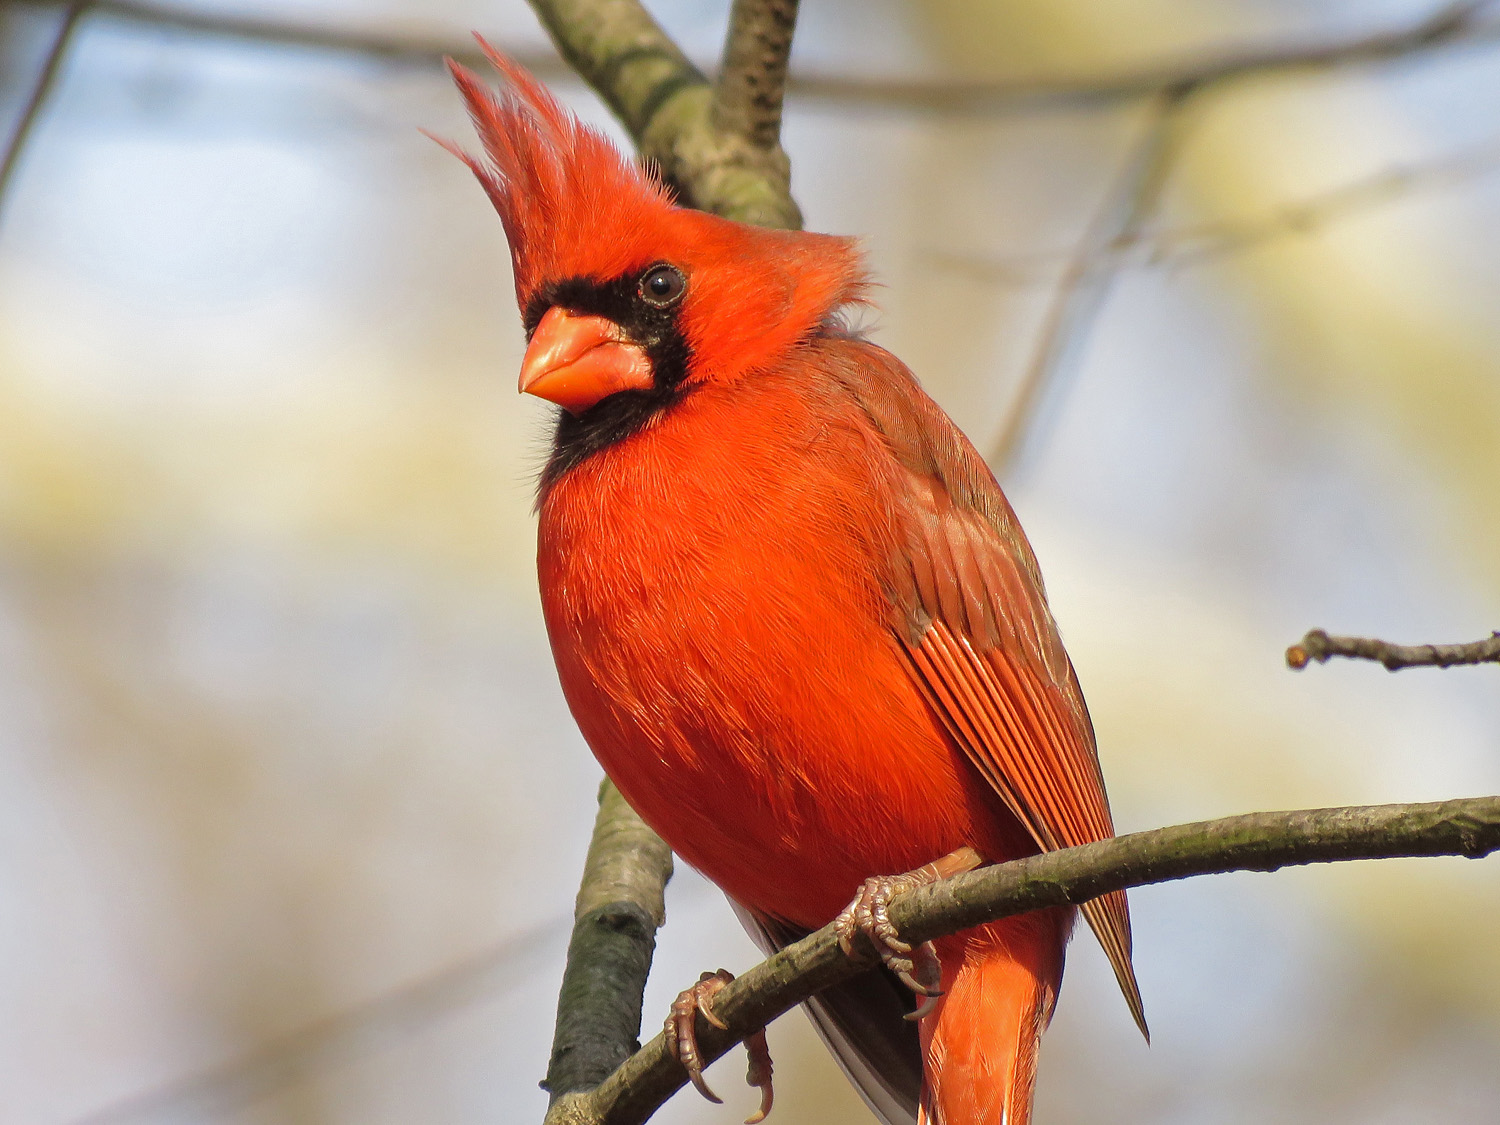 Northern cardinal at Triplets Bridge, Central Park, March 20, 2019